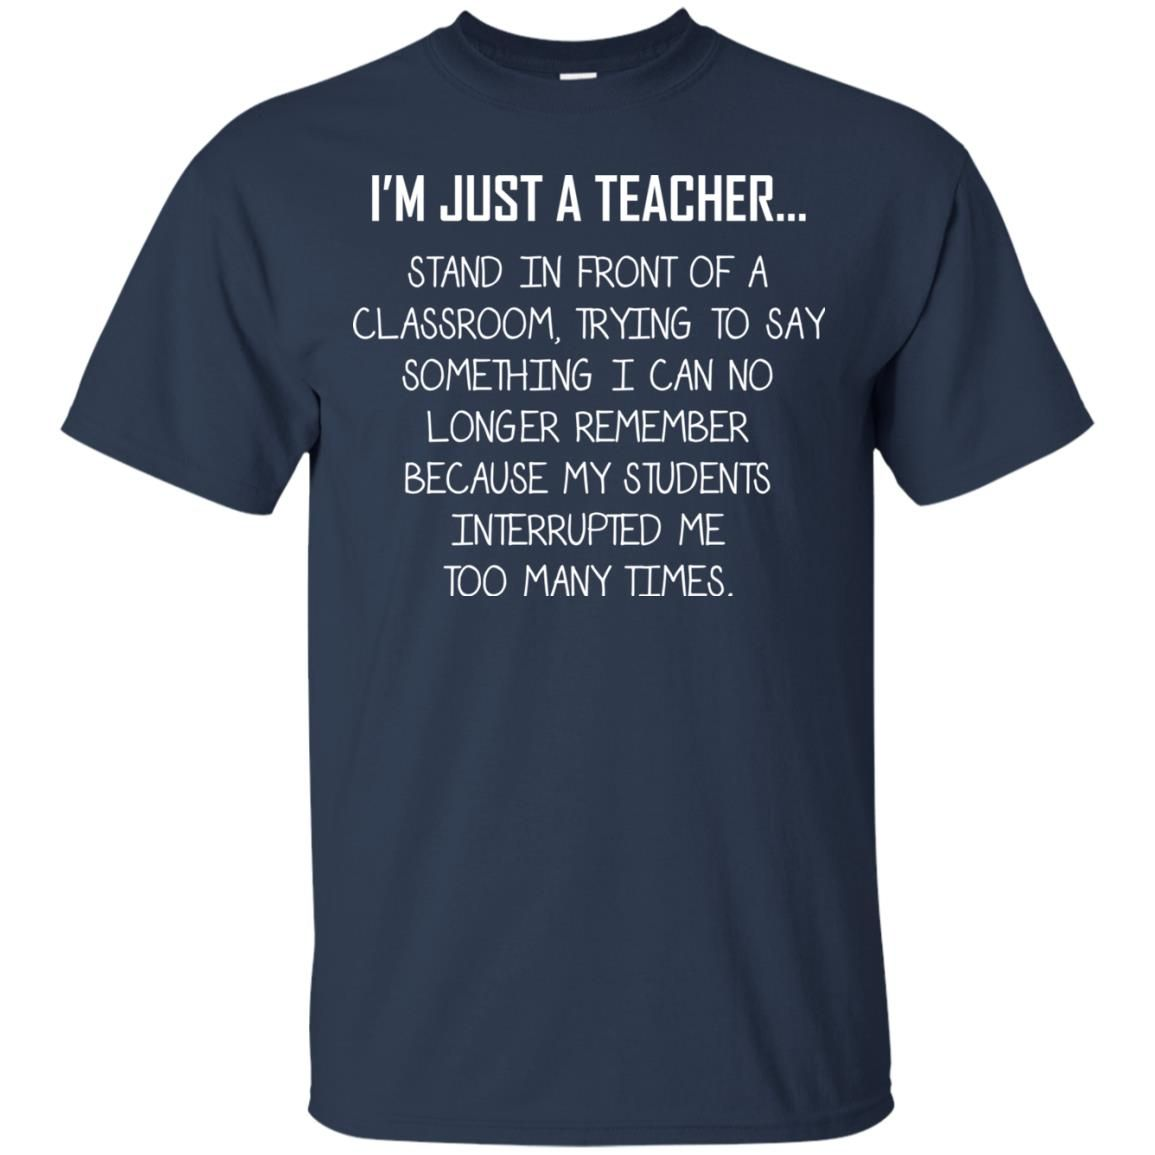 image 1328 - I'm just a teacher stand in front of a classroom shirt